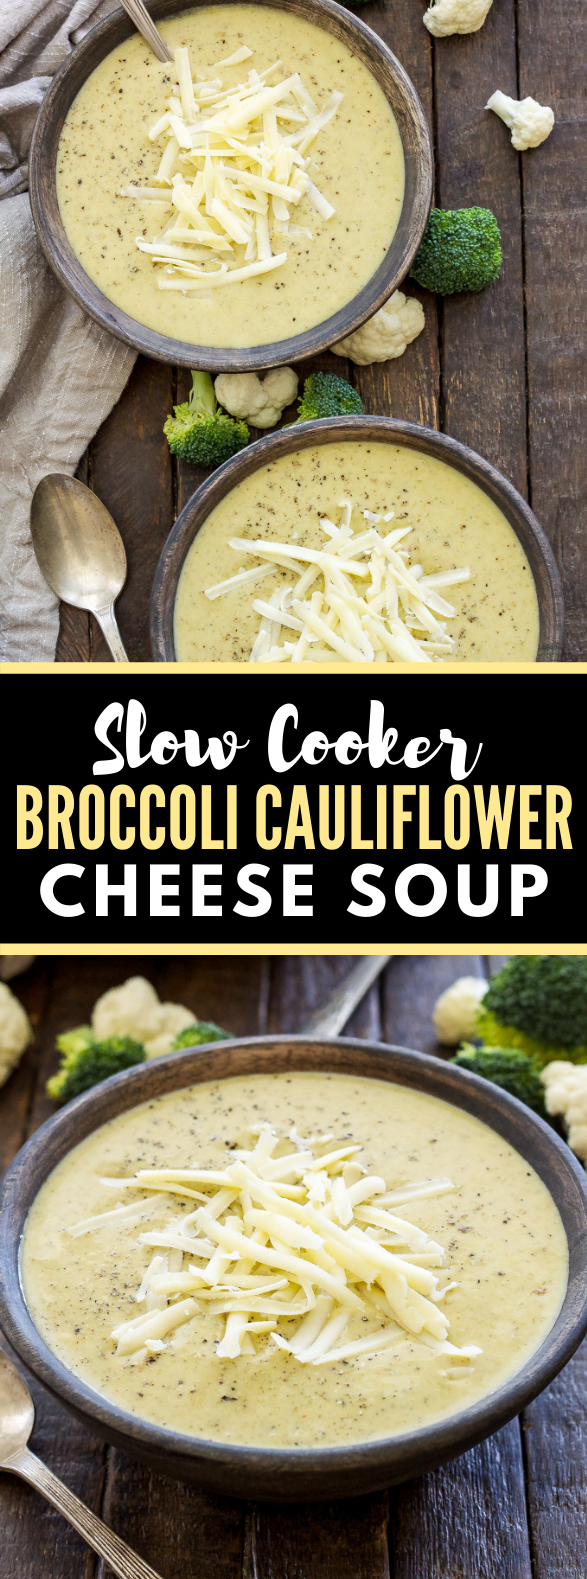 SLOW COOKER BROCCOLI CAULIFLOWER CHEESE SOUP #healthy #glutenfree